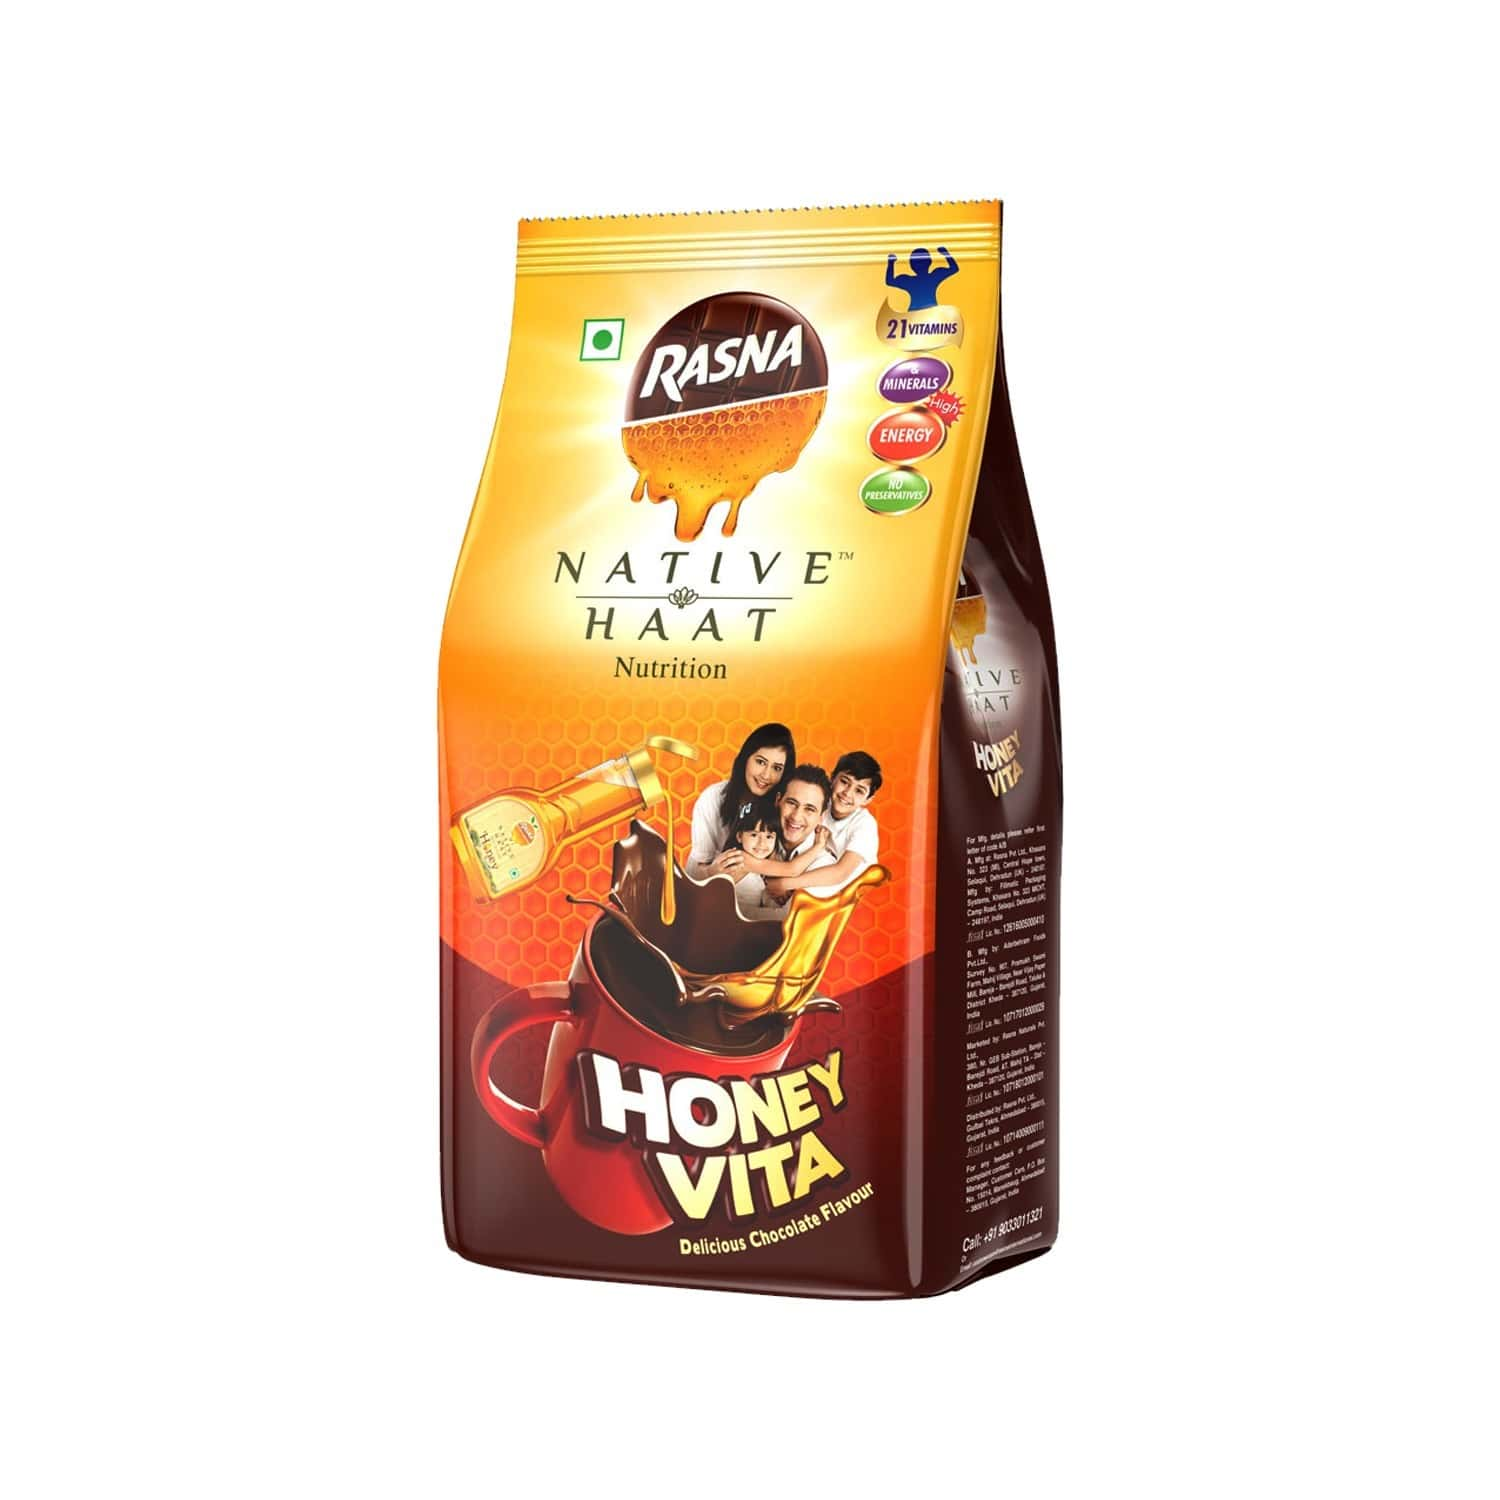 Rasna Native Haat Honeyvita Powder 500g